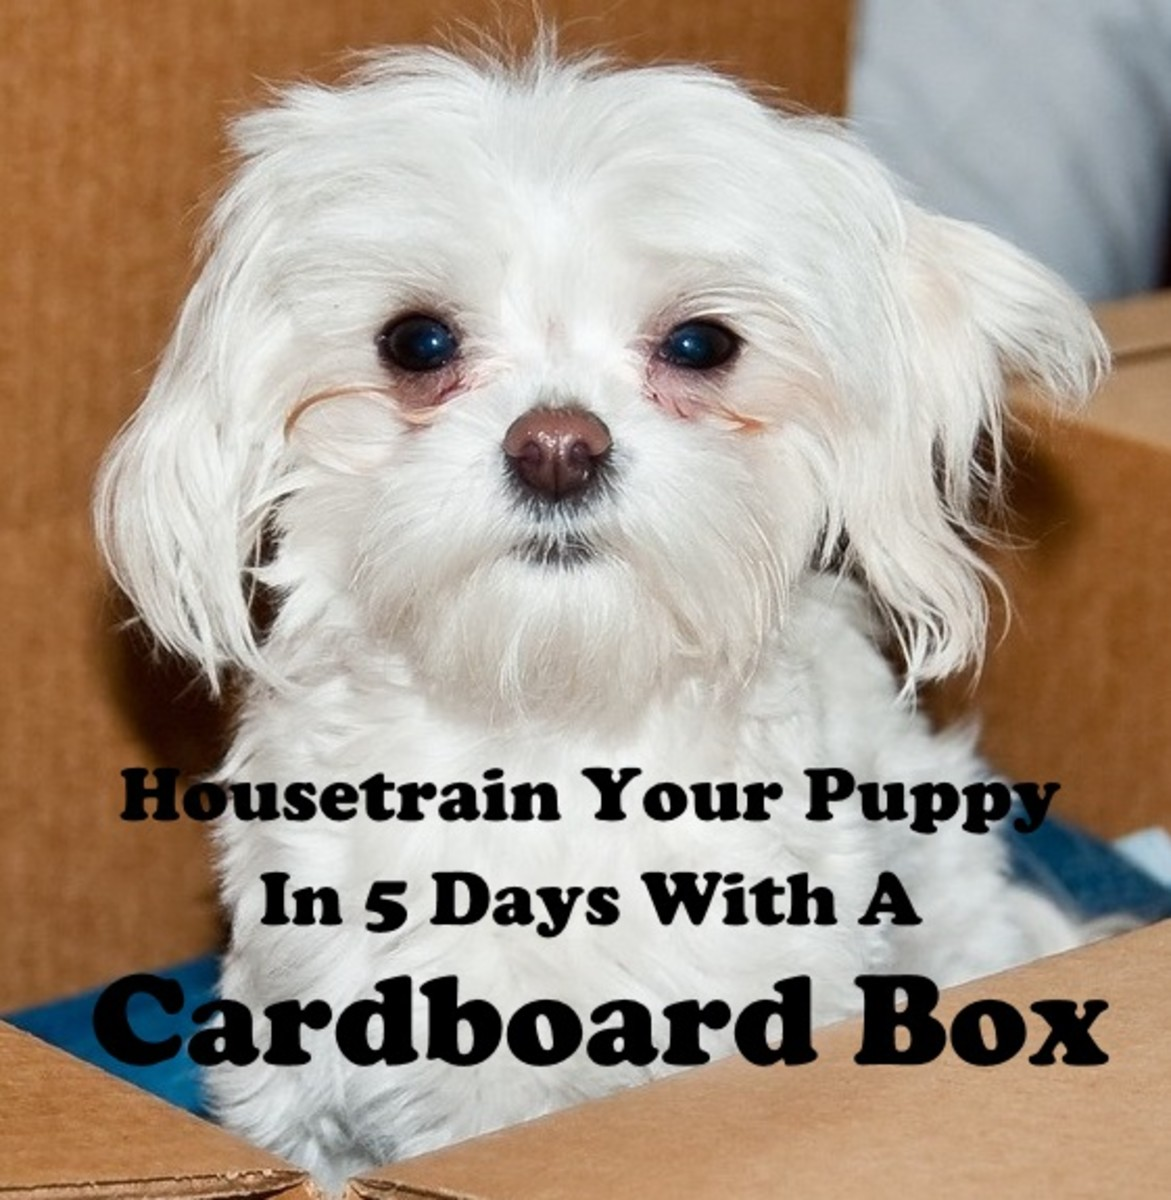 Housetrain your dog in just 5 days using a cardboard box.